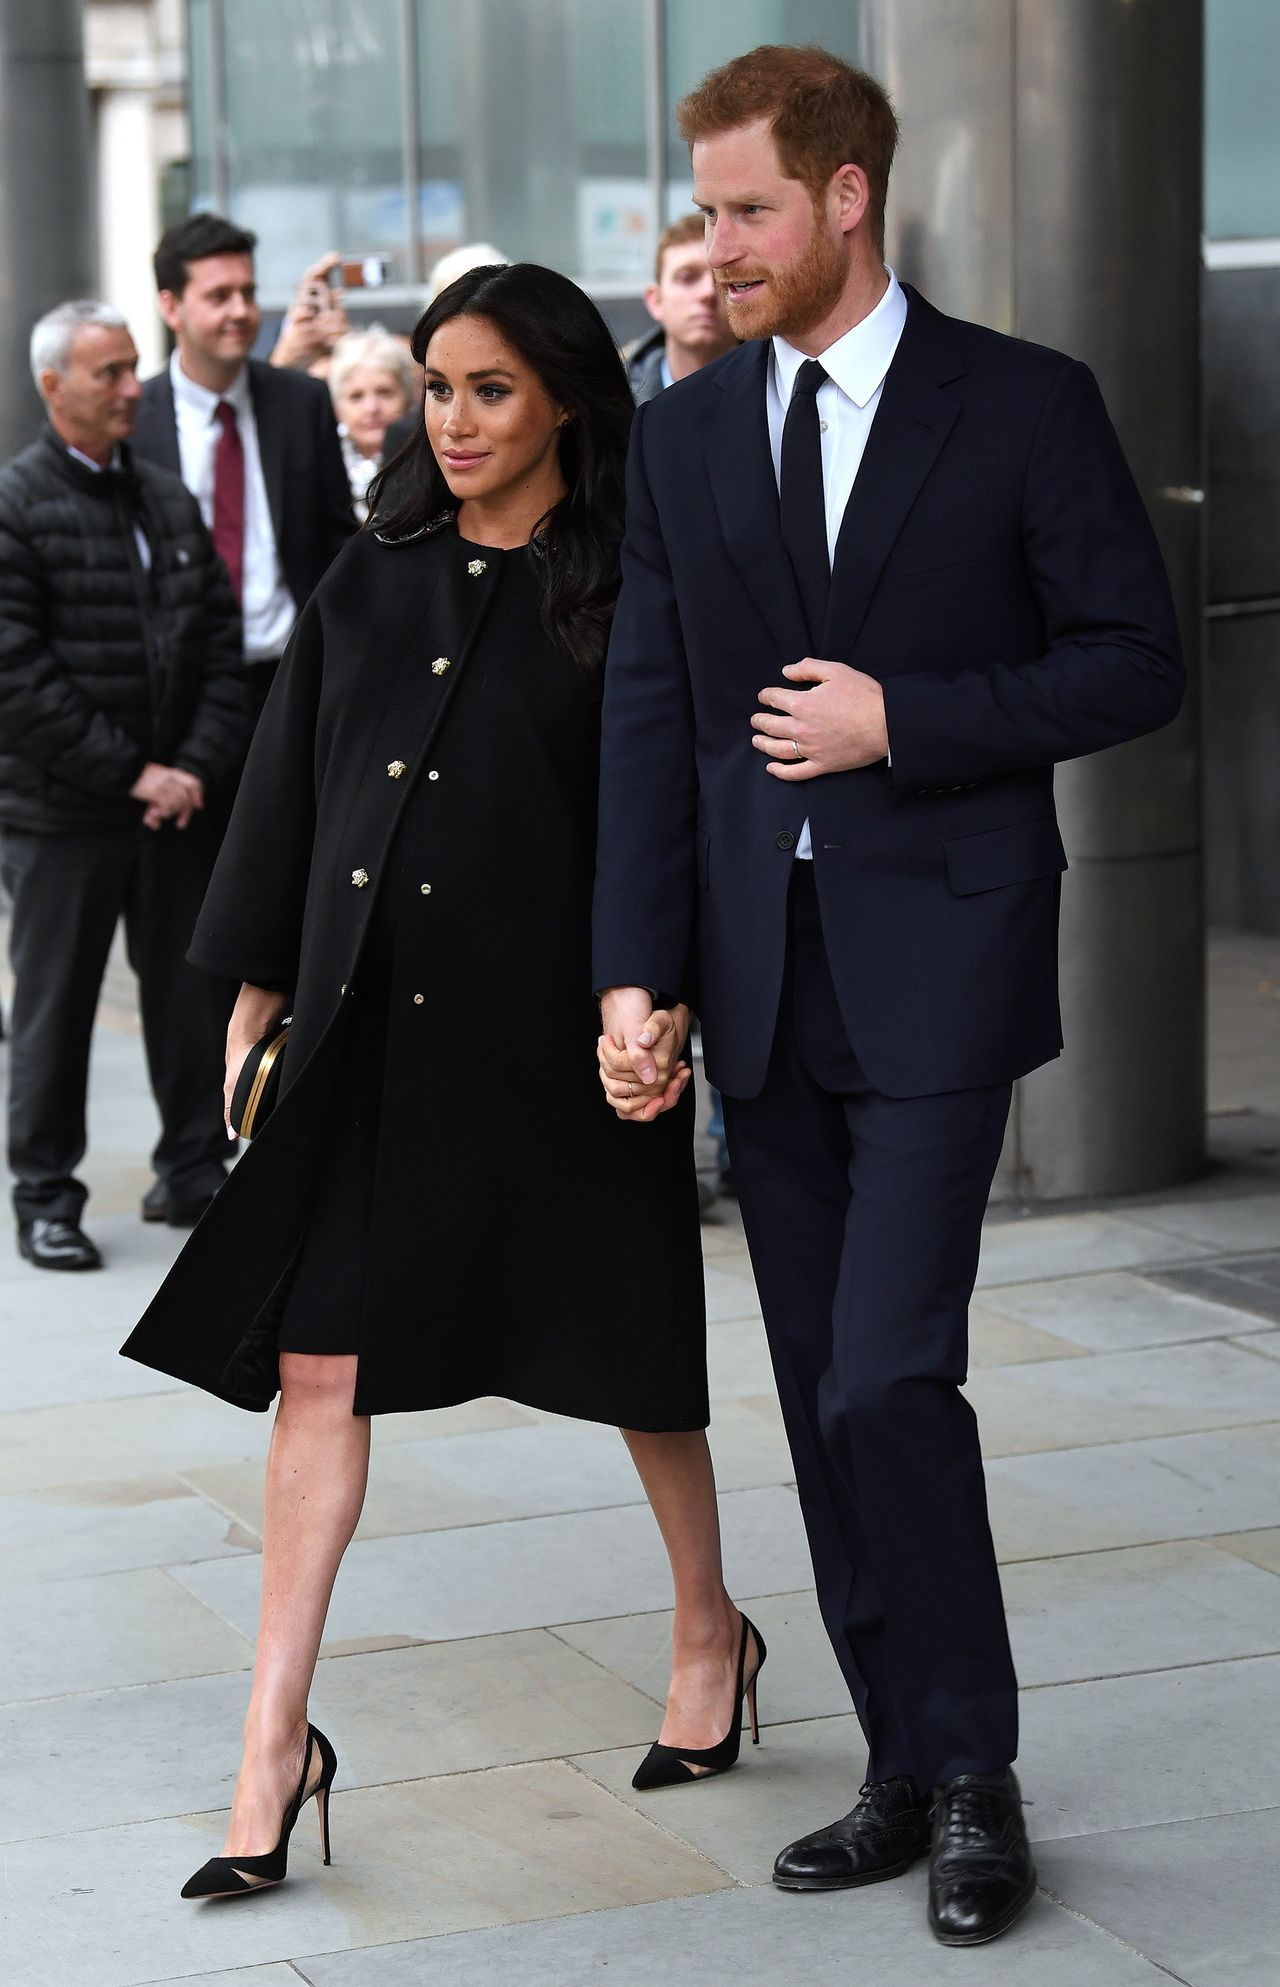 Harry and Meghan pay respects to those killed in Christchurch